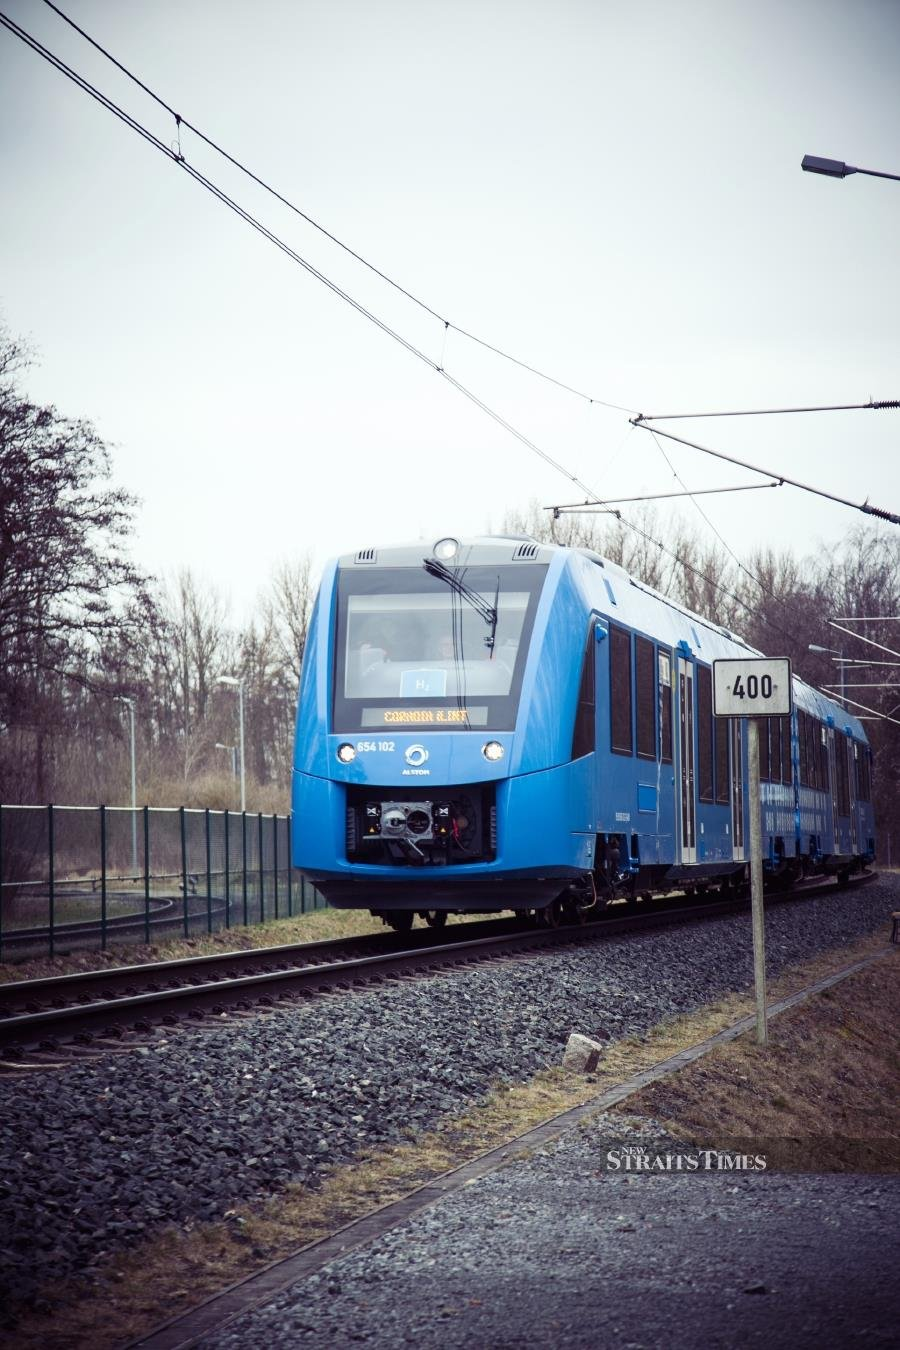 In Germany, the world's first hydrogen-powered trains are being tested on a 100km stretch of track in Lower Saxony.